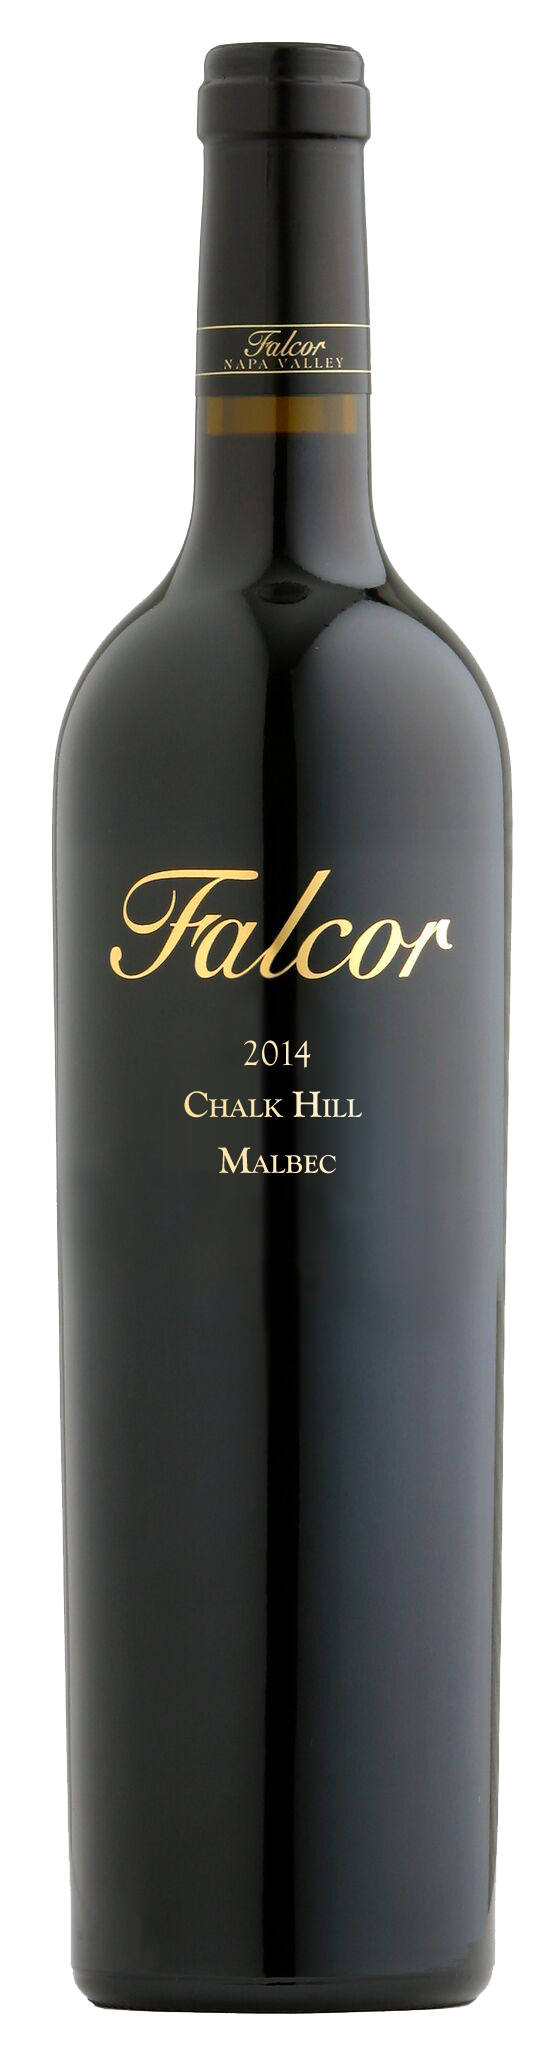 Product Image for 2014 Malbec